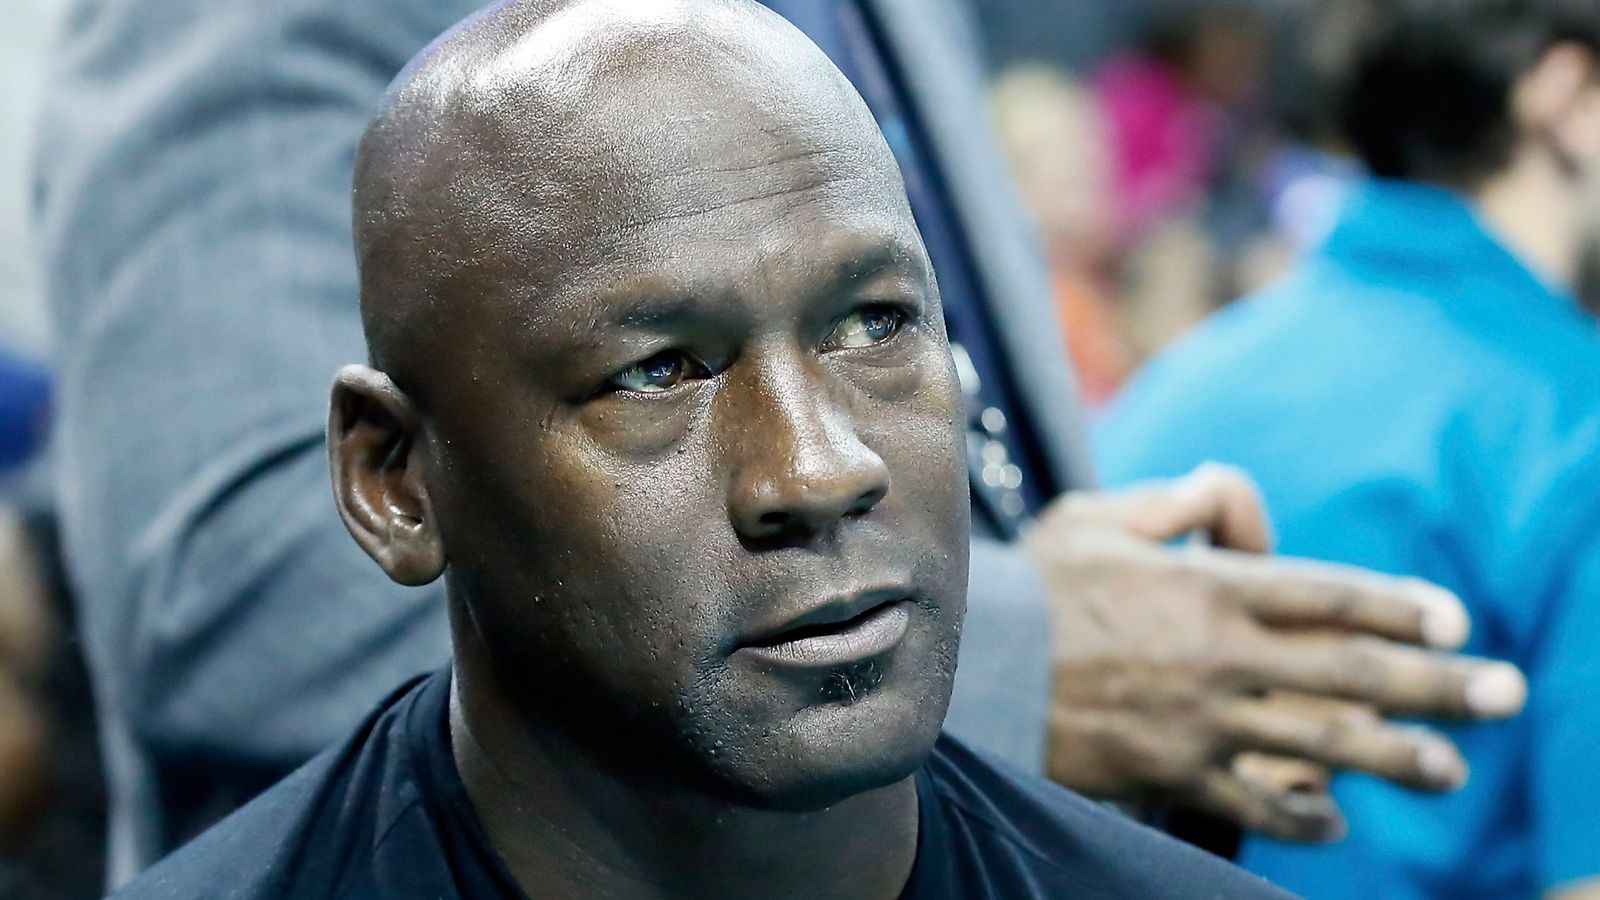 Michael Jordan to donate $100m in fight for racial equality